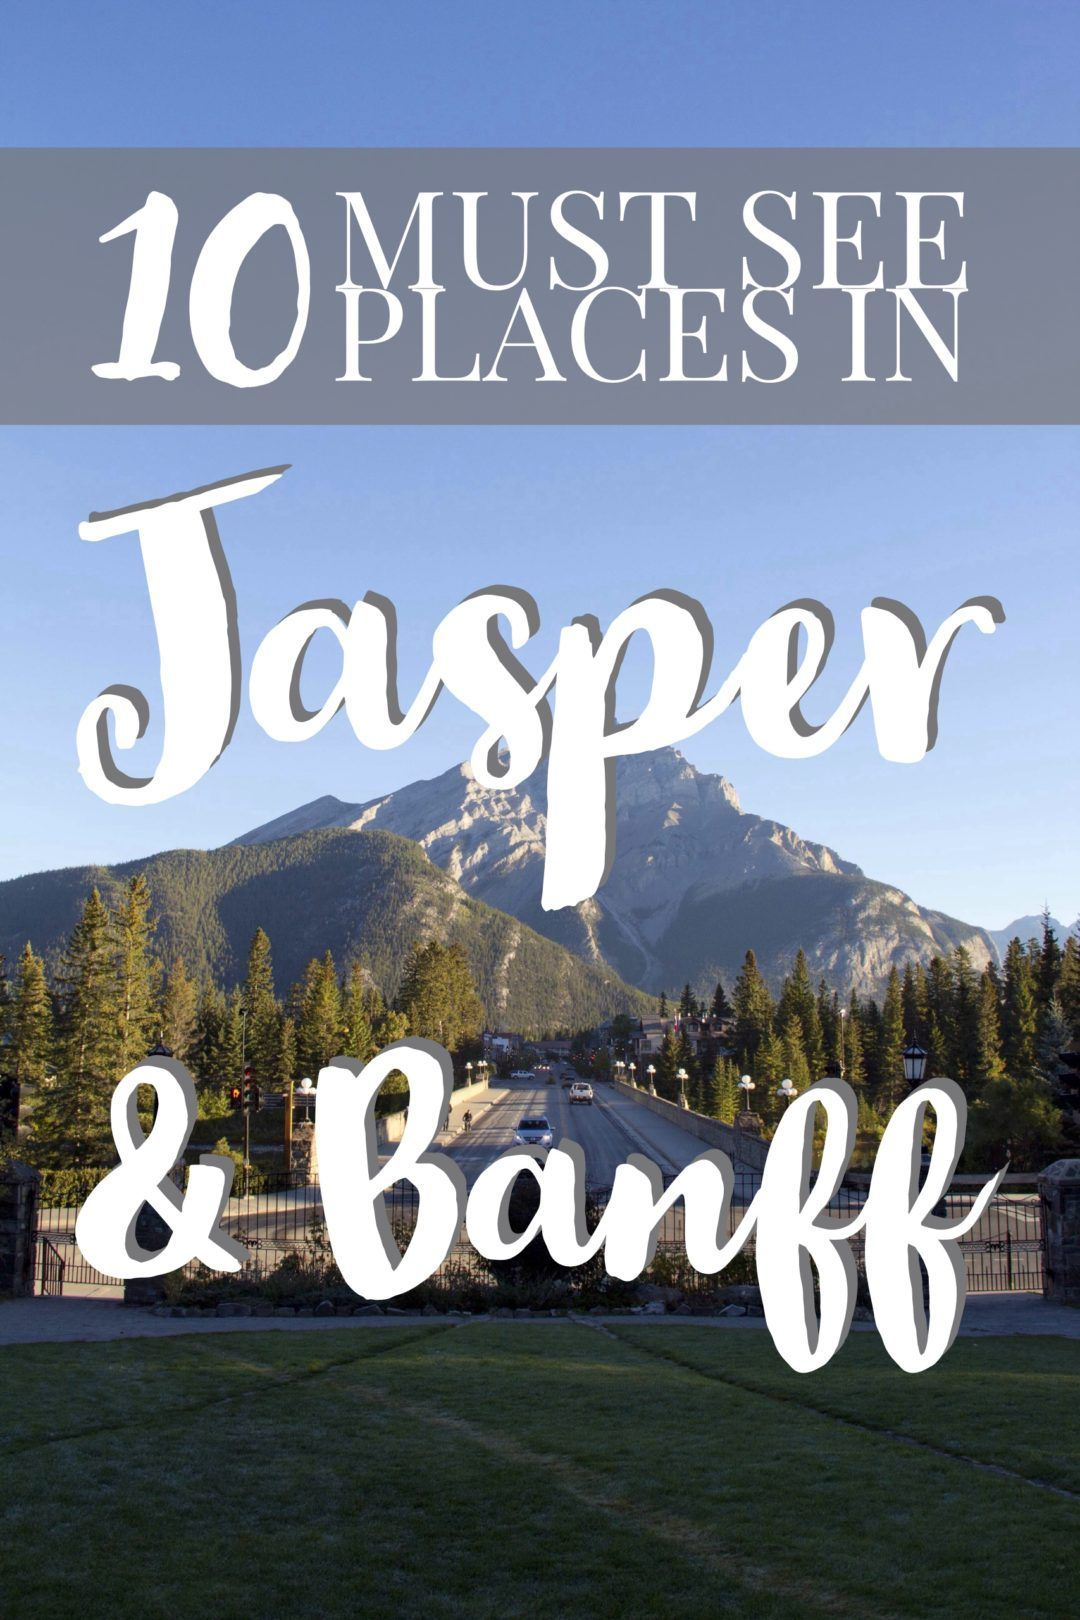 10 must see places in Jasper and Banff ALberta | My Wandering Voyage travel blog #style #shopping #styles #outfit #pretty #girl #girls #beauty #beautiful #me #cute #stylish #photooftheday #swag #dress #shoes #diy #design #fashion #Travel